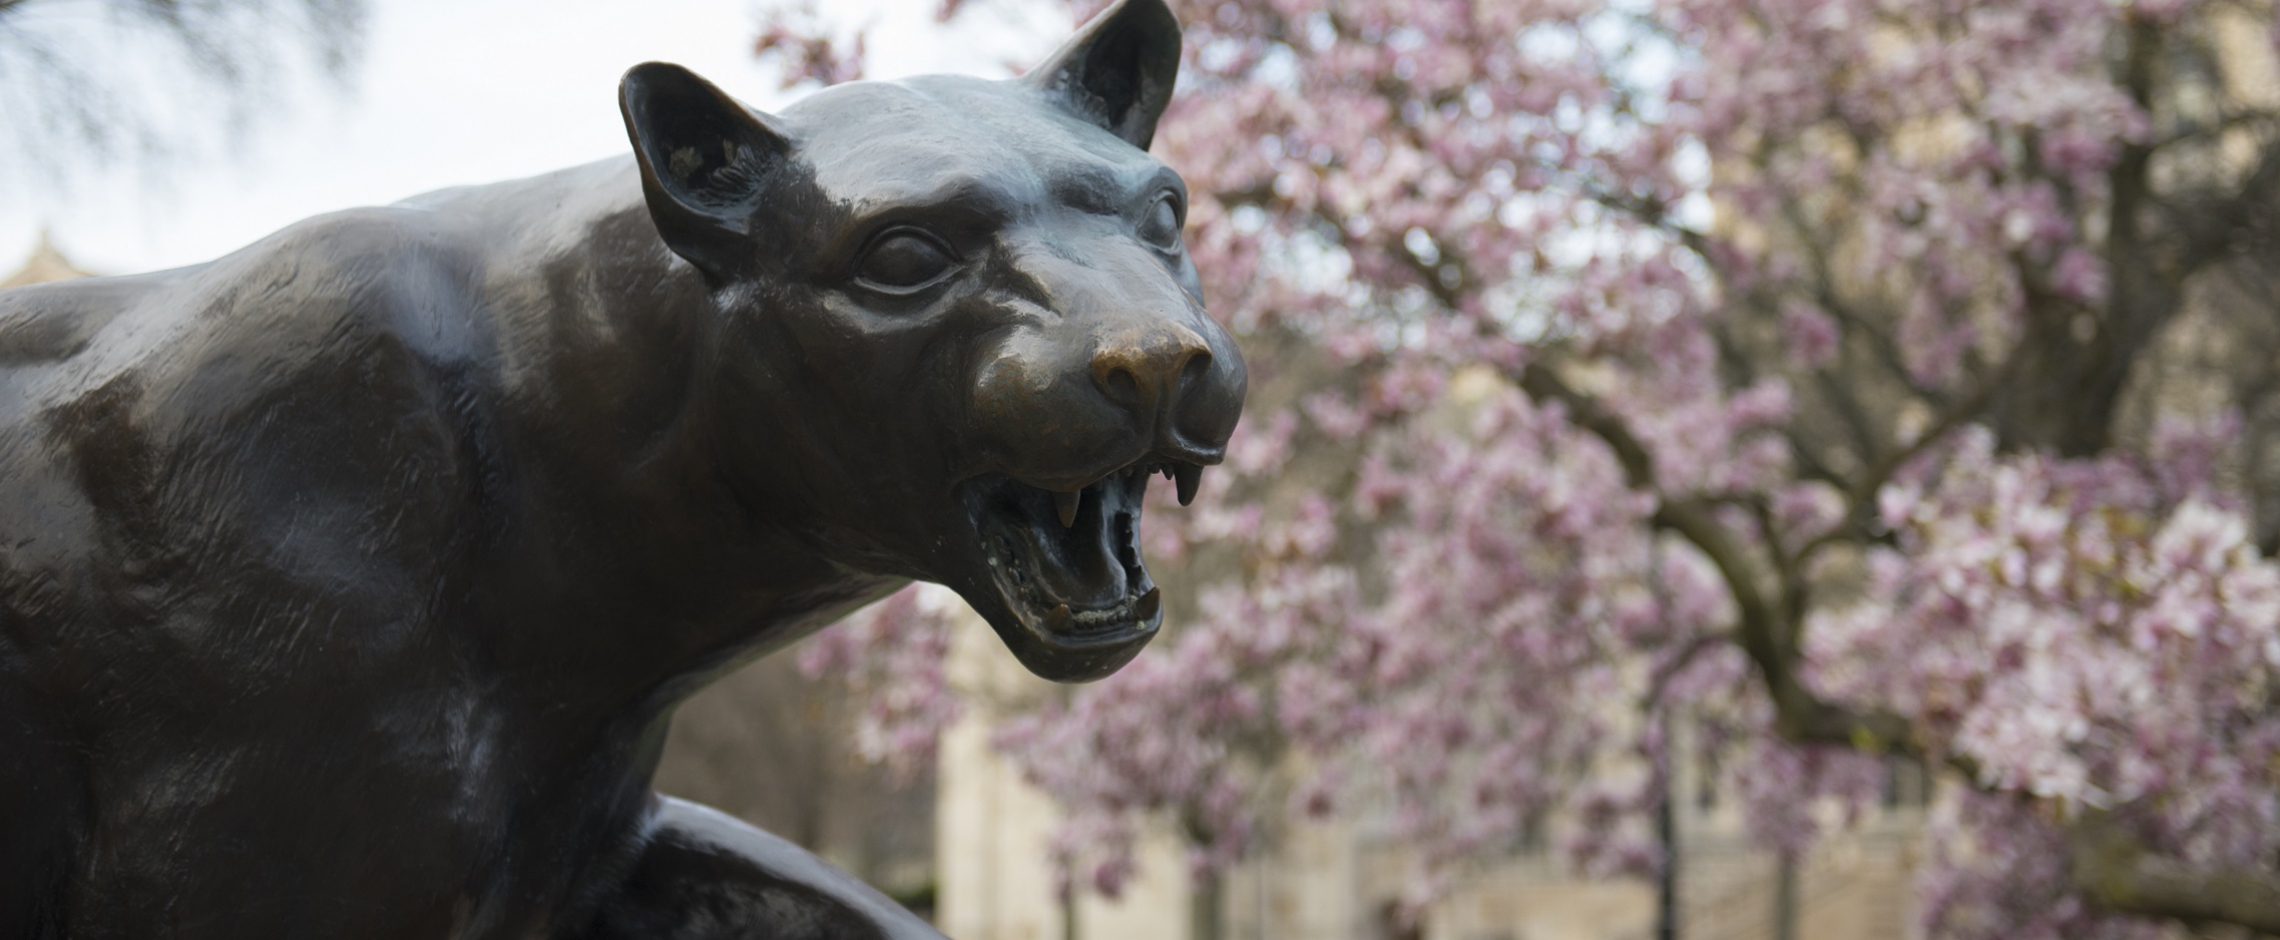 Panther with Spring Flowers